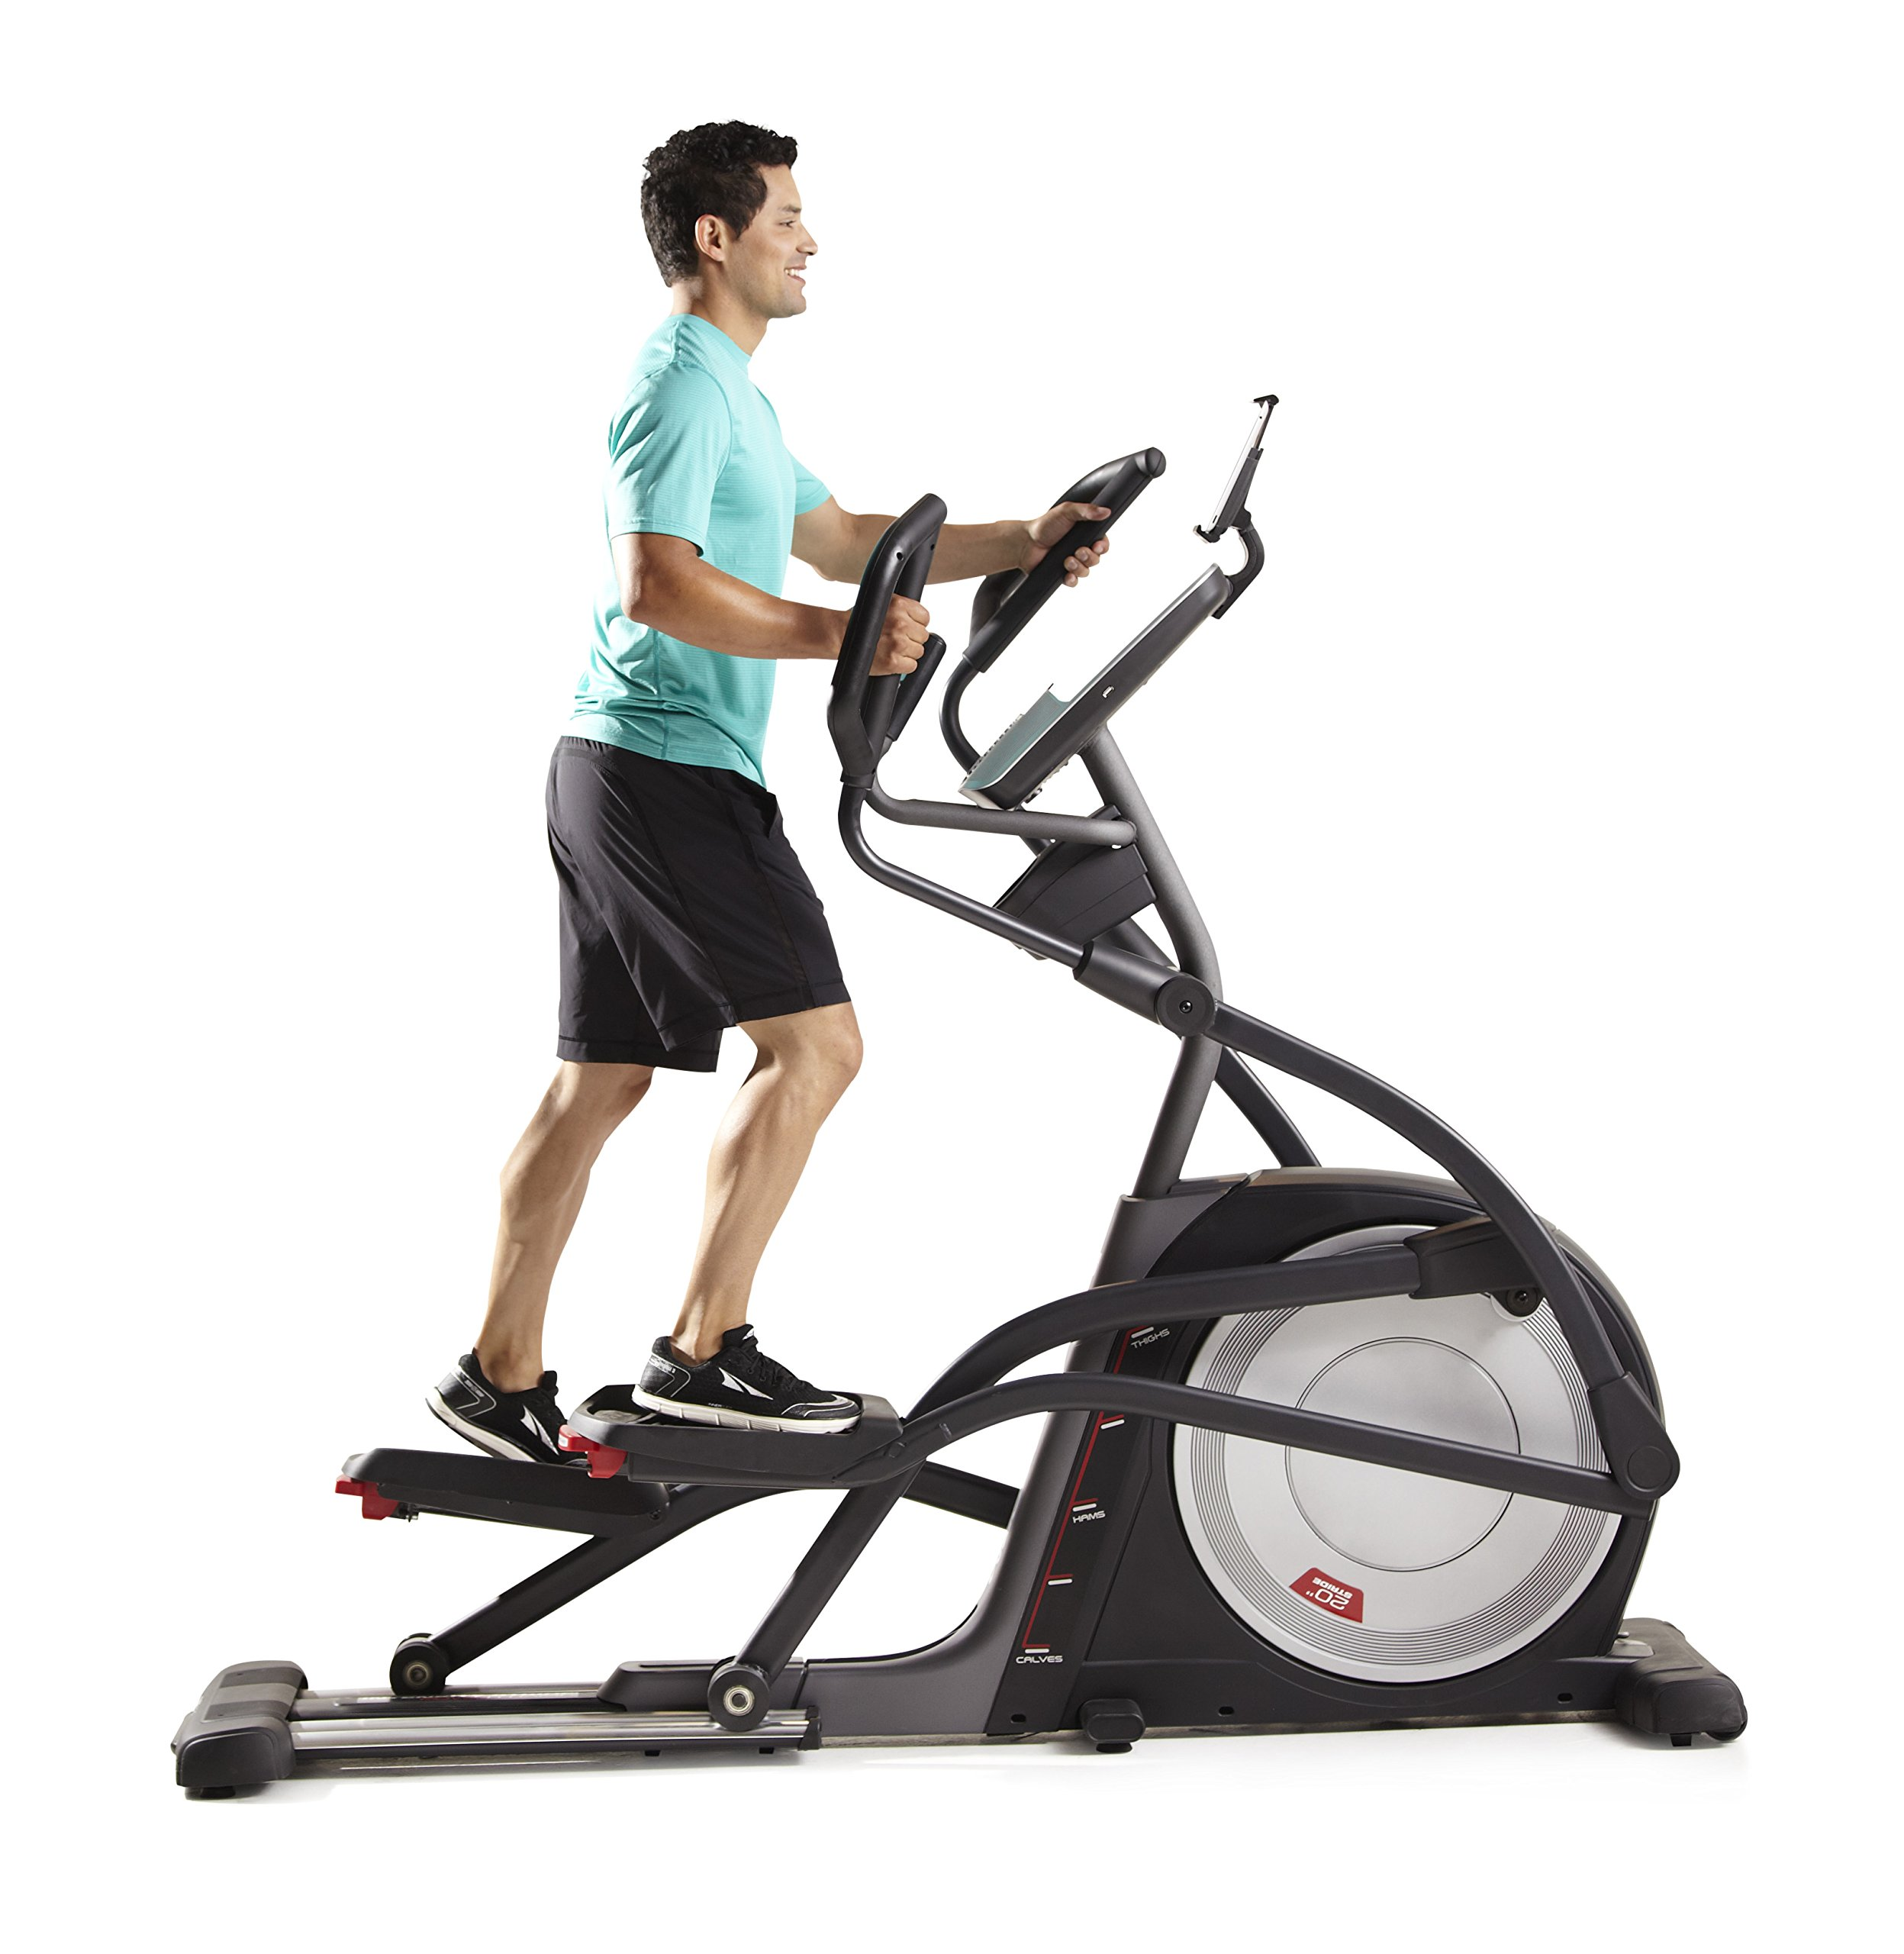 ProForm Pro 16.9 Elliptical Trainer by ProForm (Image #14)